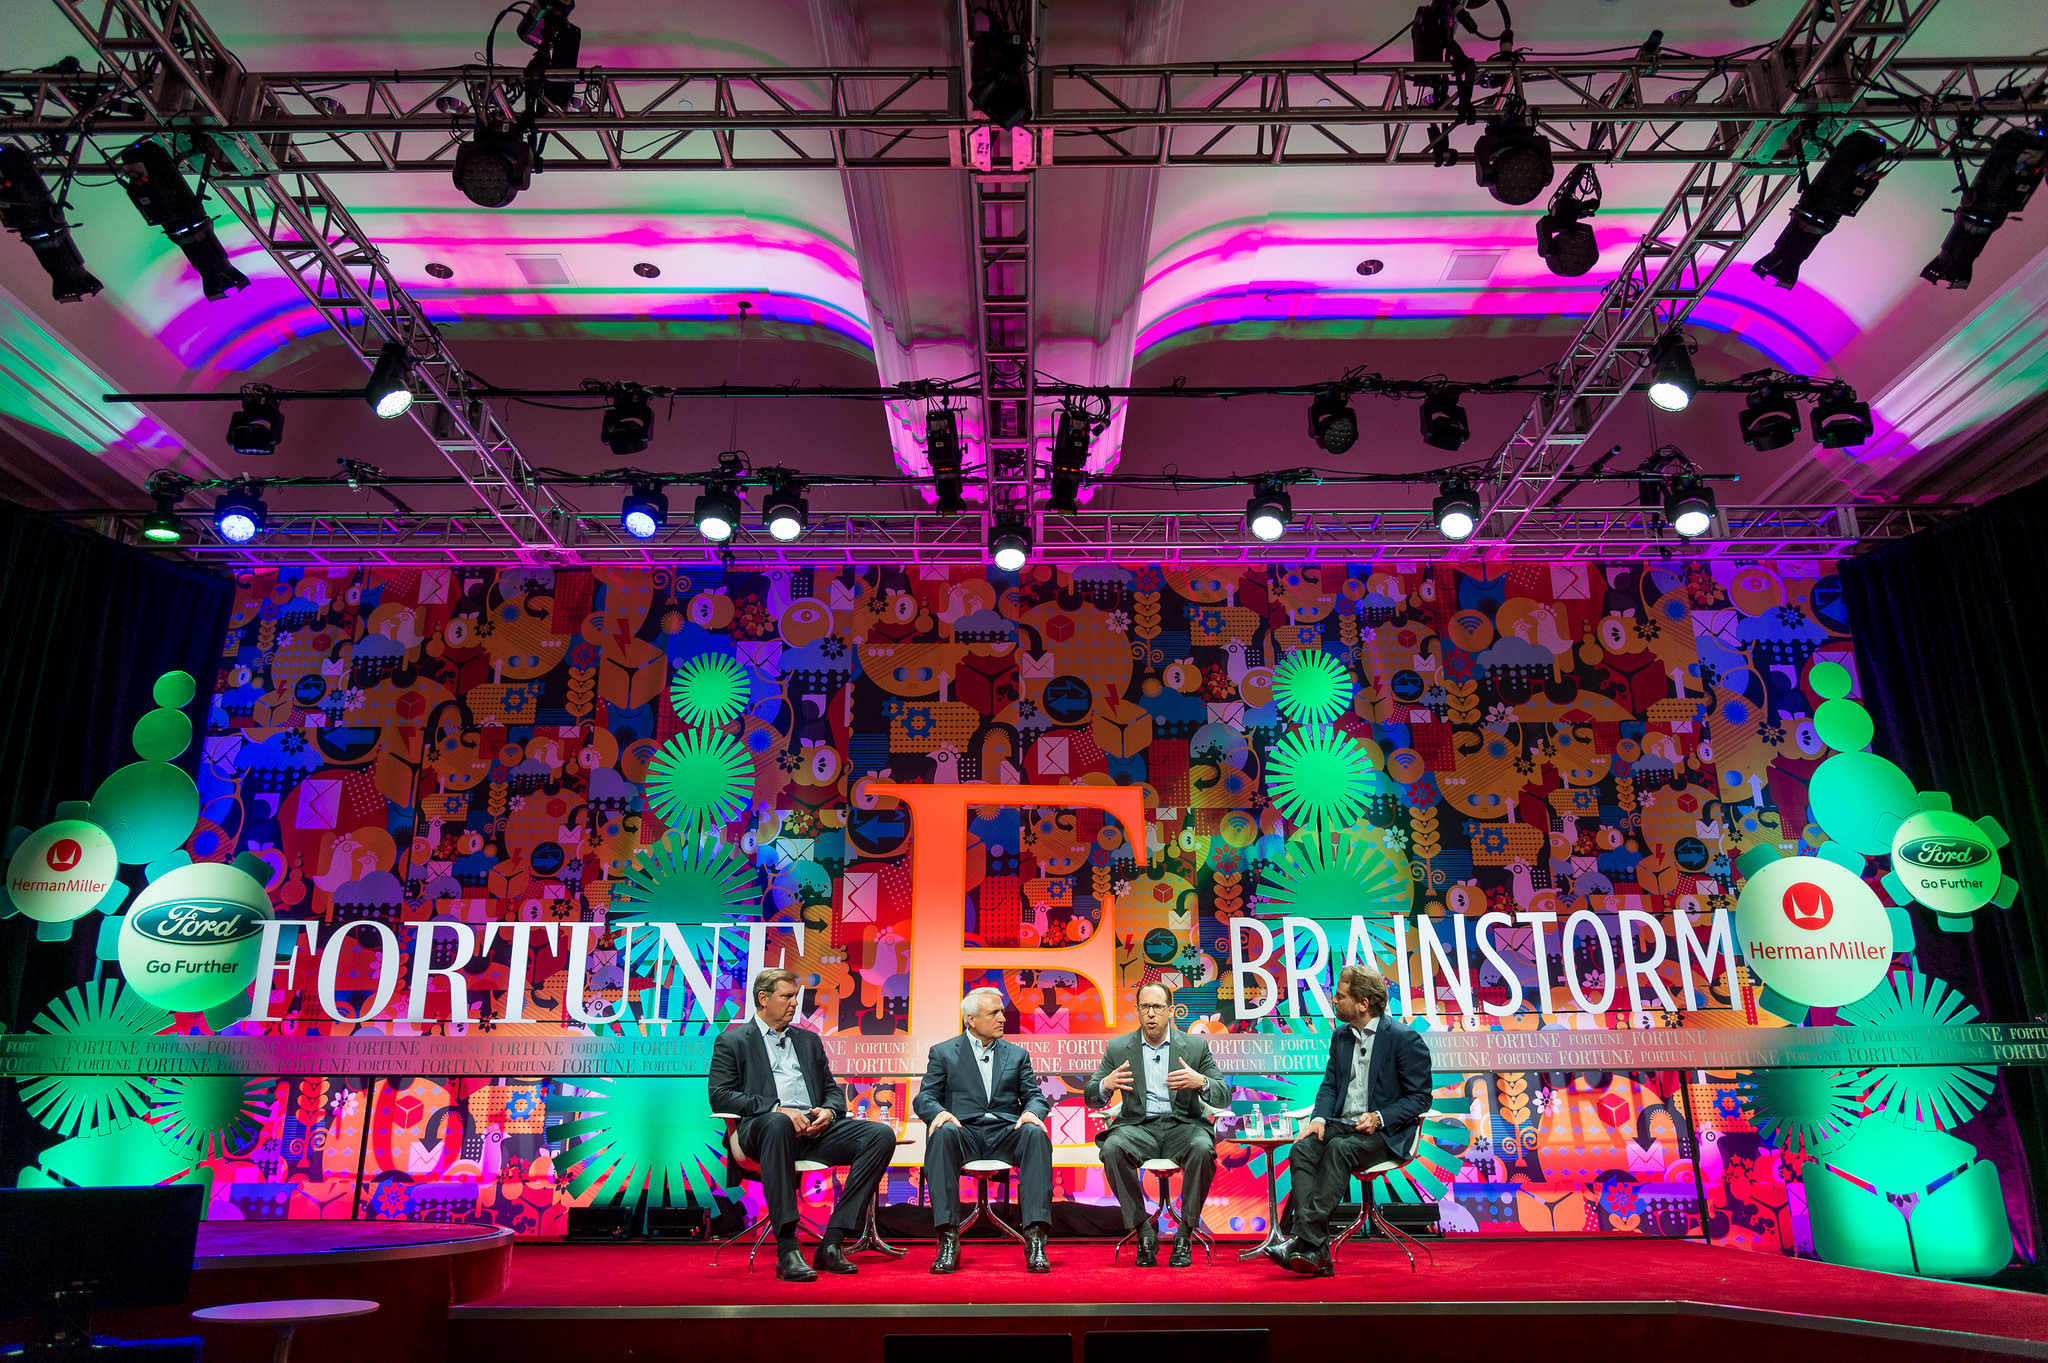 On stage at Fortune Brainstorm E on May 17 were Eric Spiegel, president and CEO, Siemens USA; Bill Ritter, founder and director, Center for the New Energy Economy; Glenn Lurie, president and CEO, AT&T Mobility and Consumer Operations; and Andrew Shapiro founder and partner, Broadscale Group.